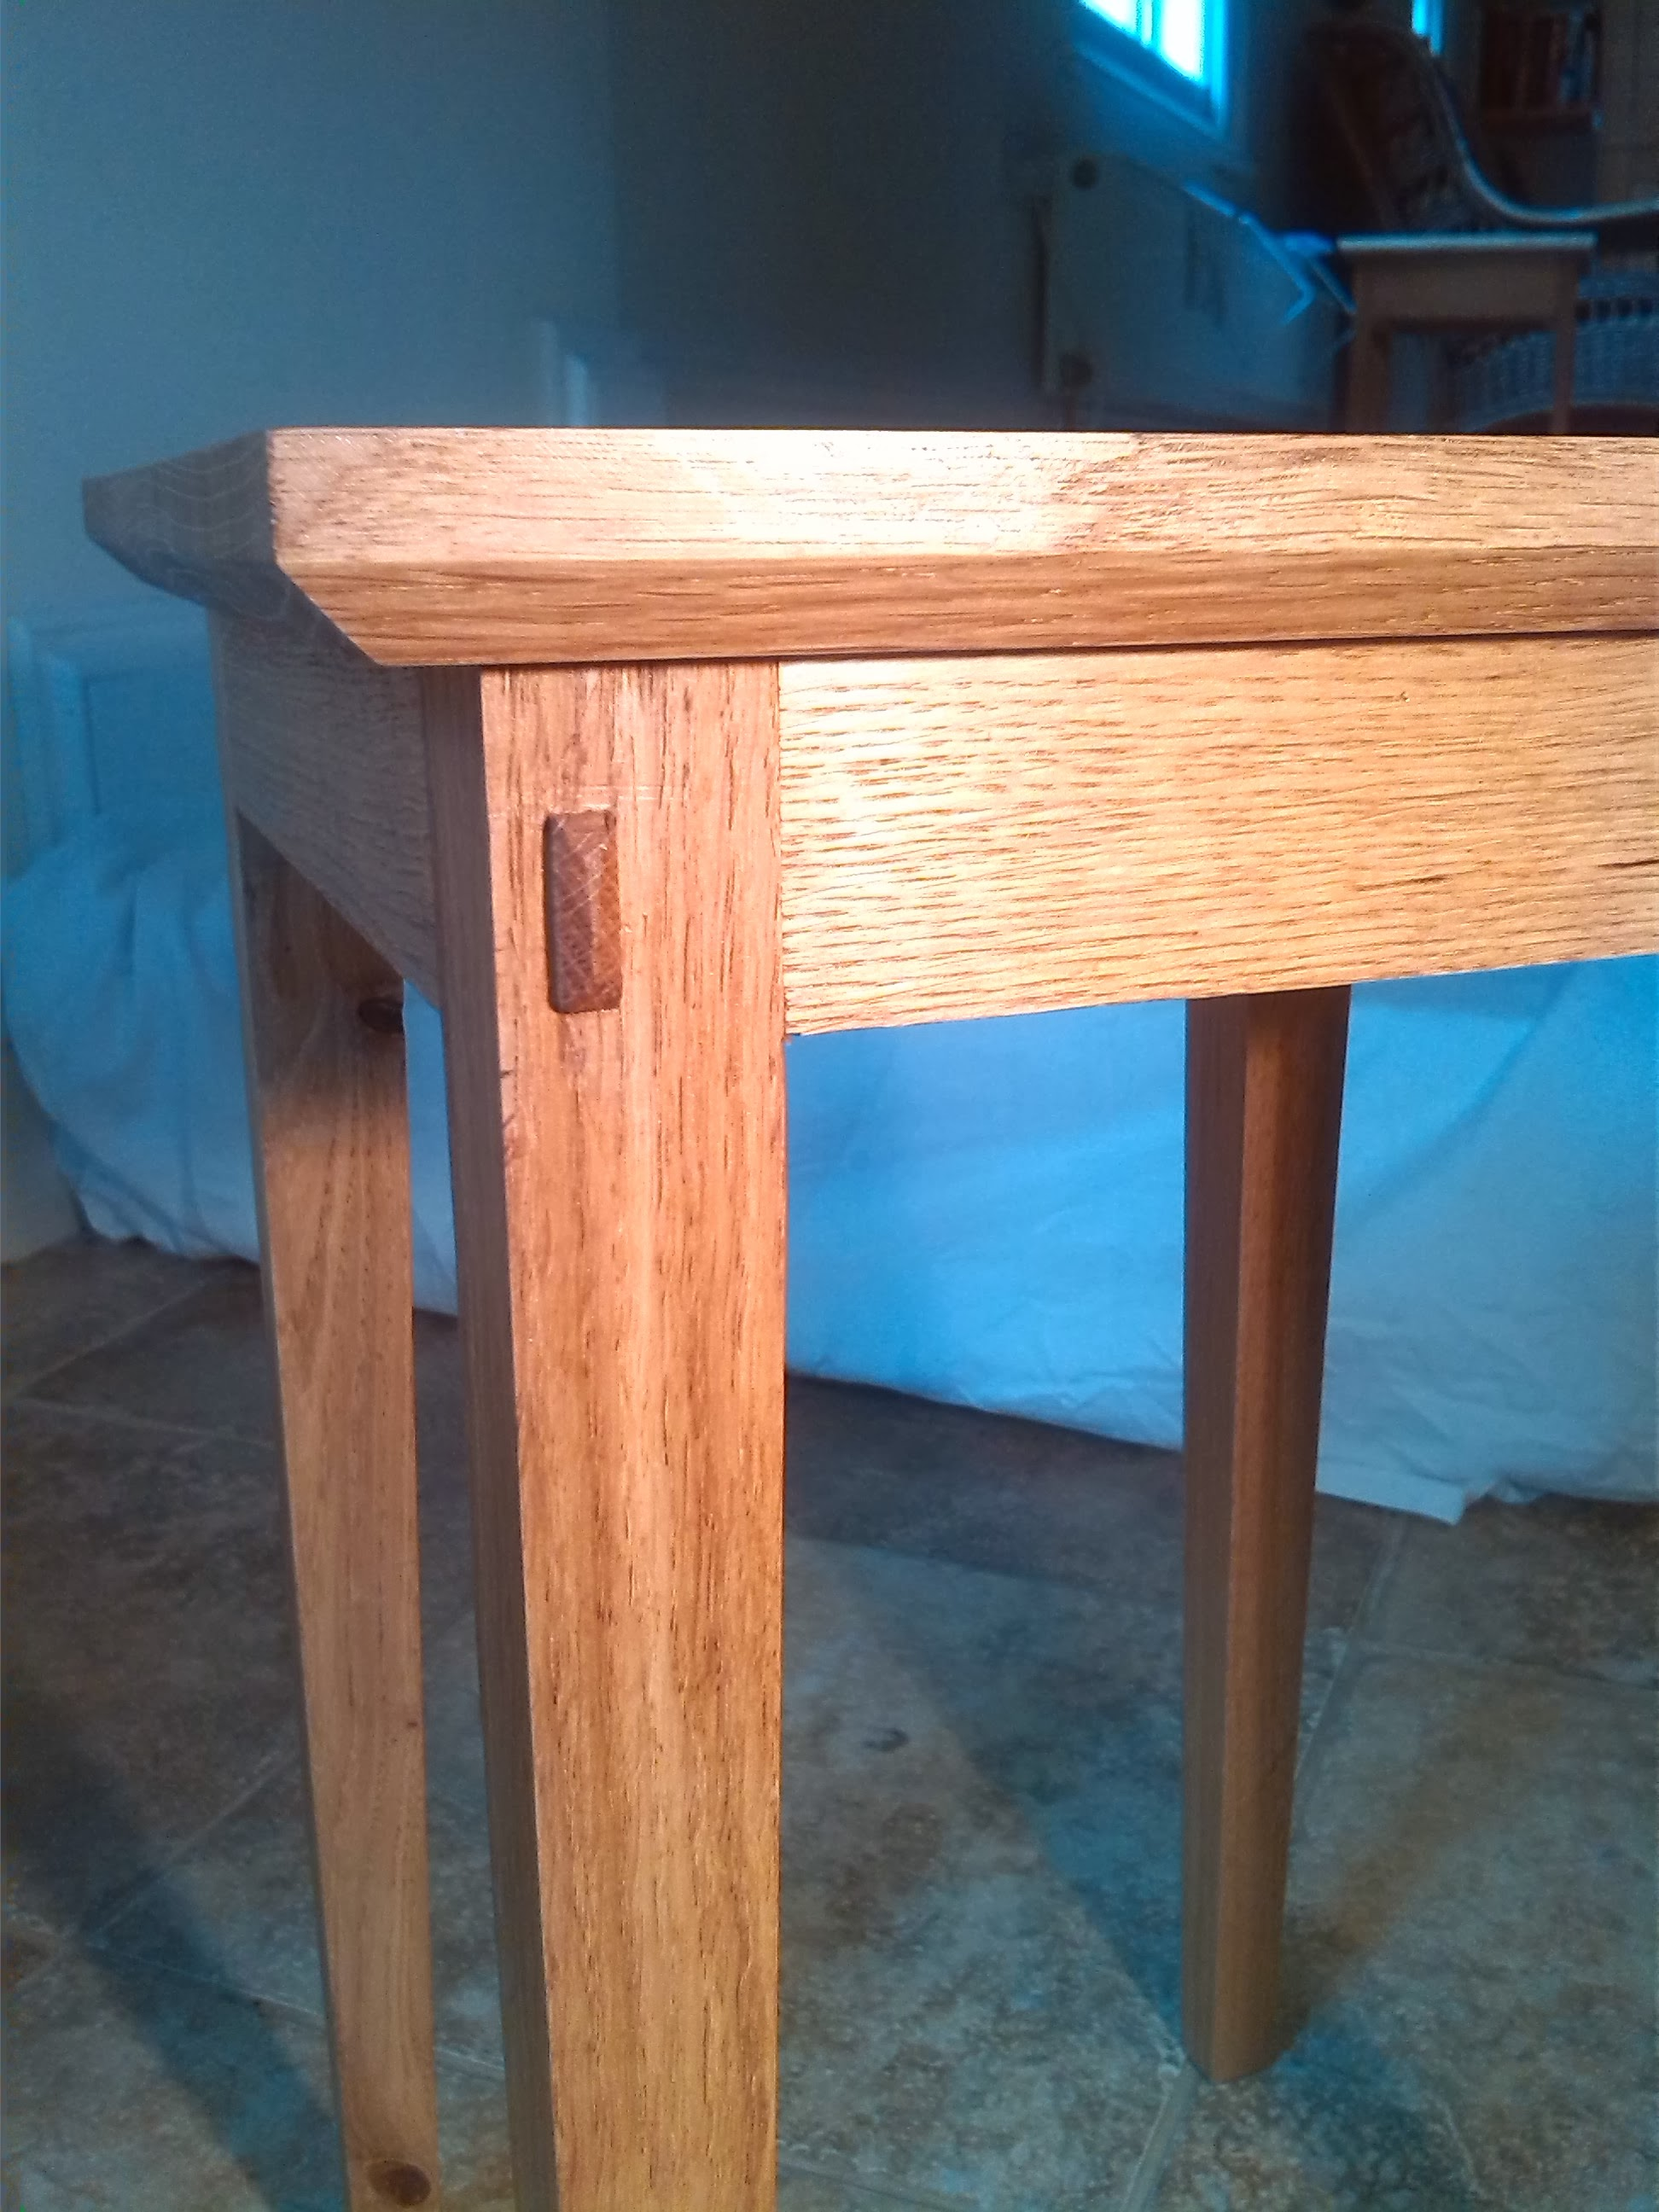 Through-tennon detail on oak table